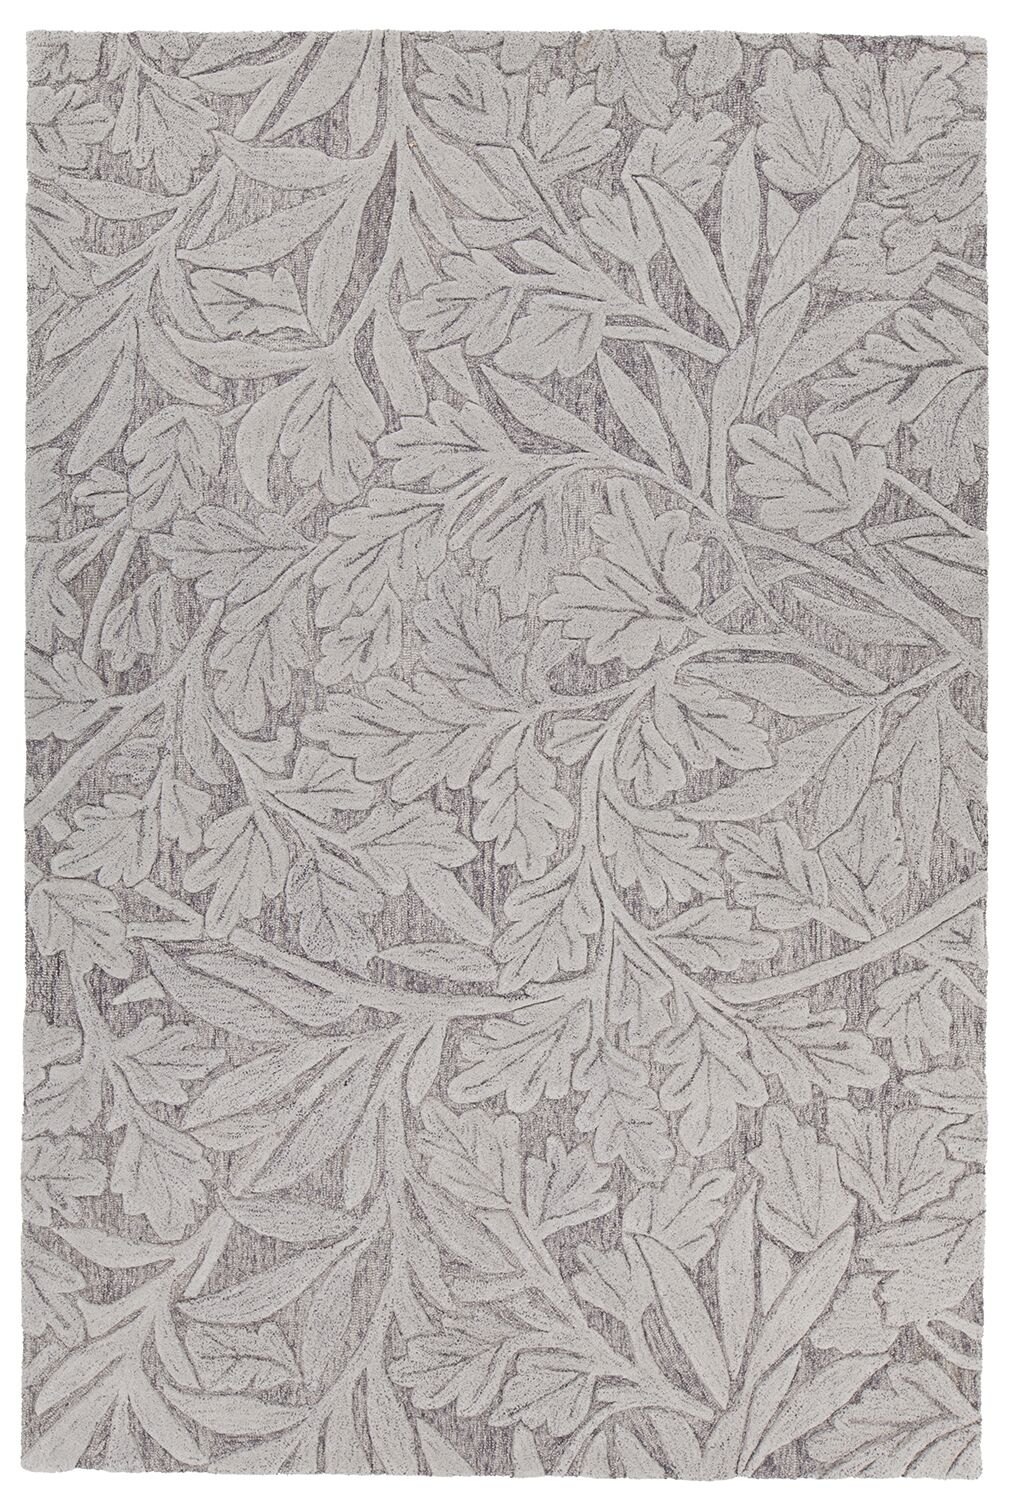 Boothe Hand-Tufted Gray Area Rug Rug Size: 9' x 13'